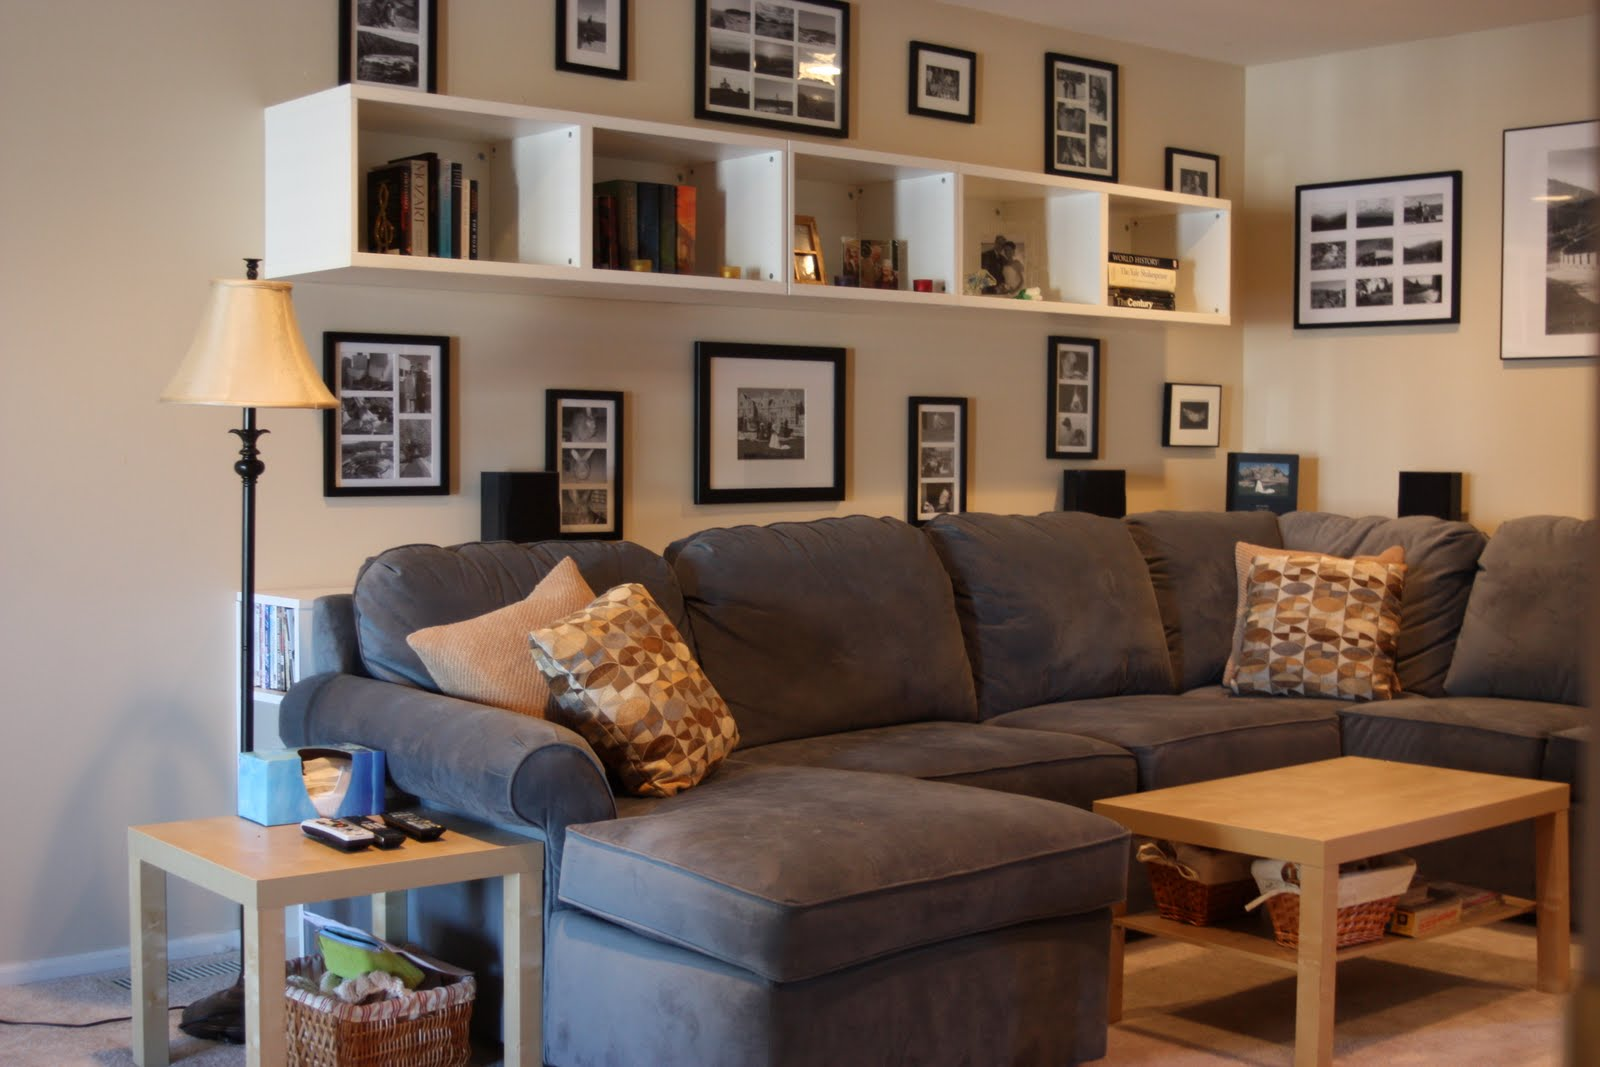 Wonderful Love Bookcase Idea Behind Couch  For The Home  Pinterest